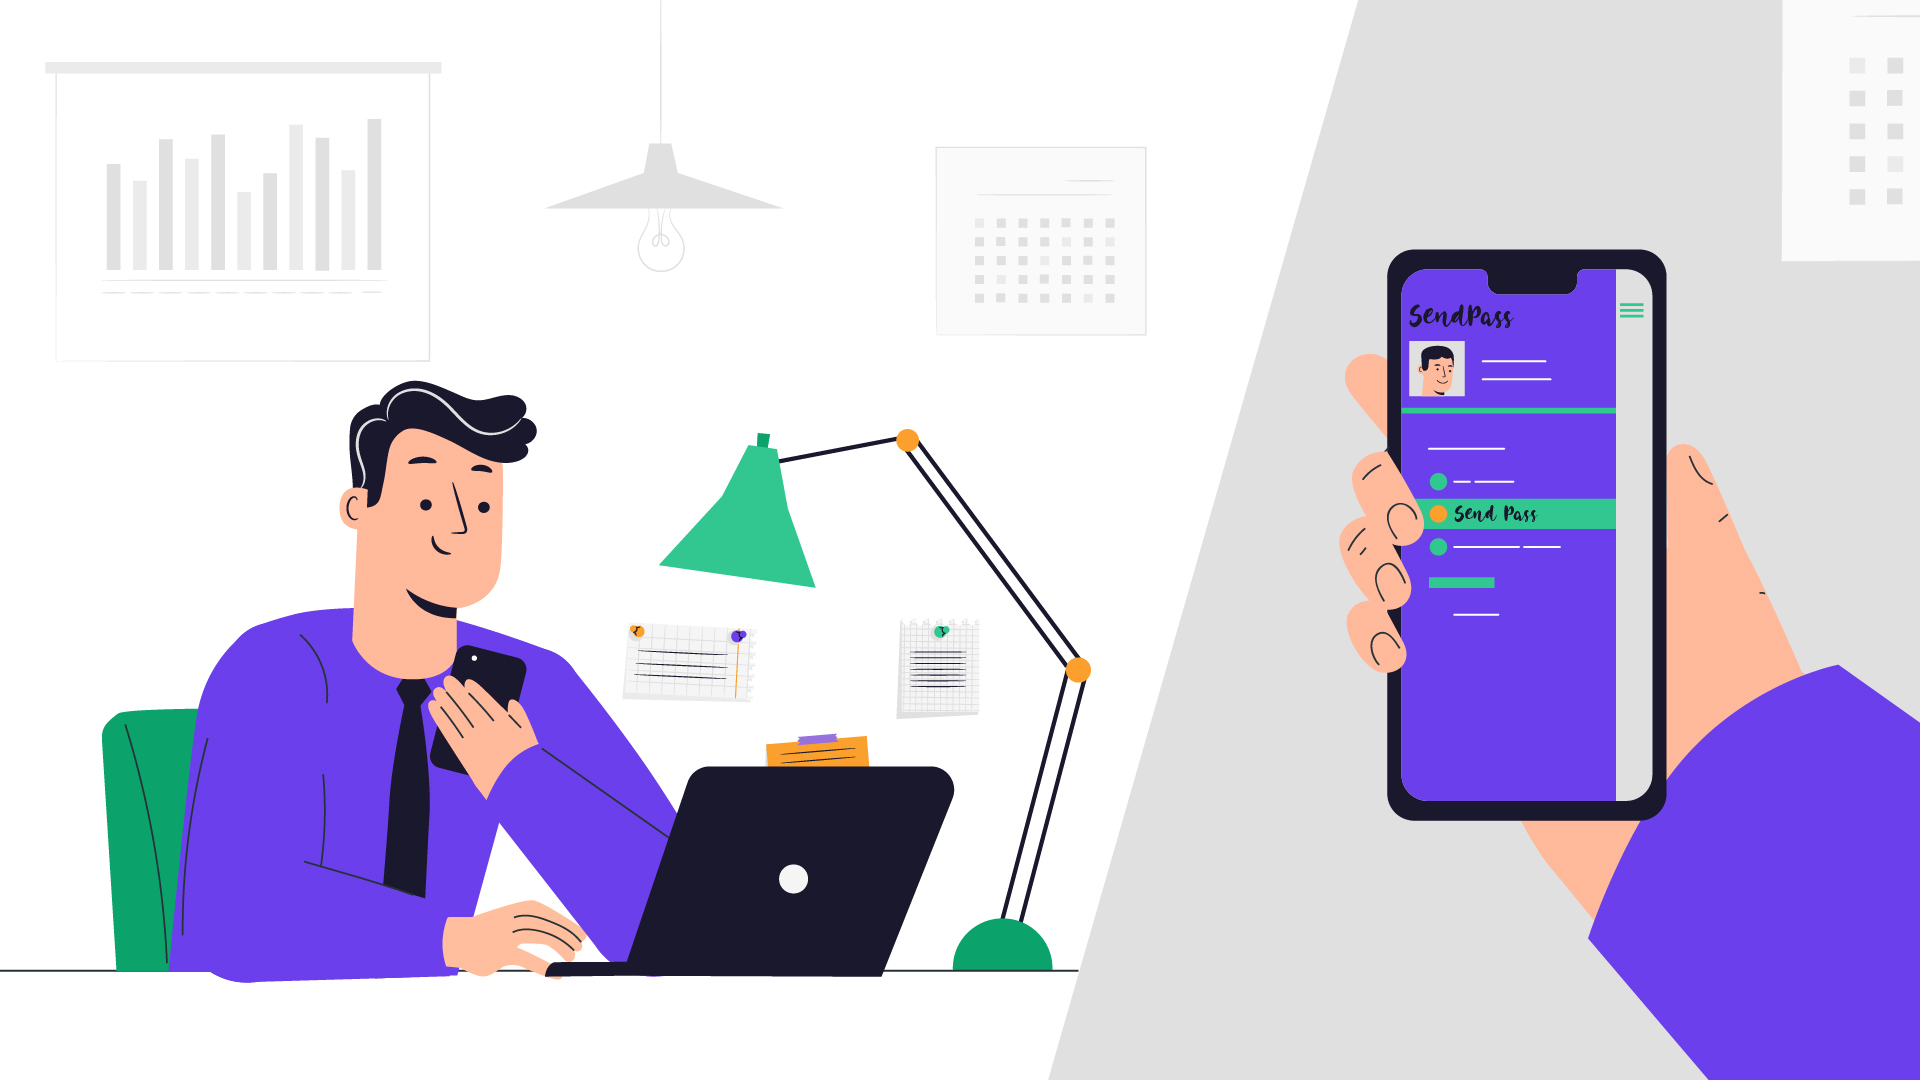 App for businessmen   Animated video about app